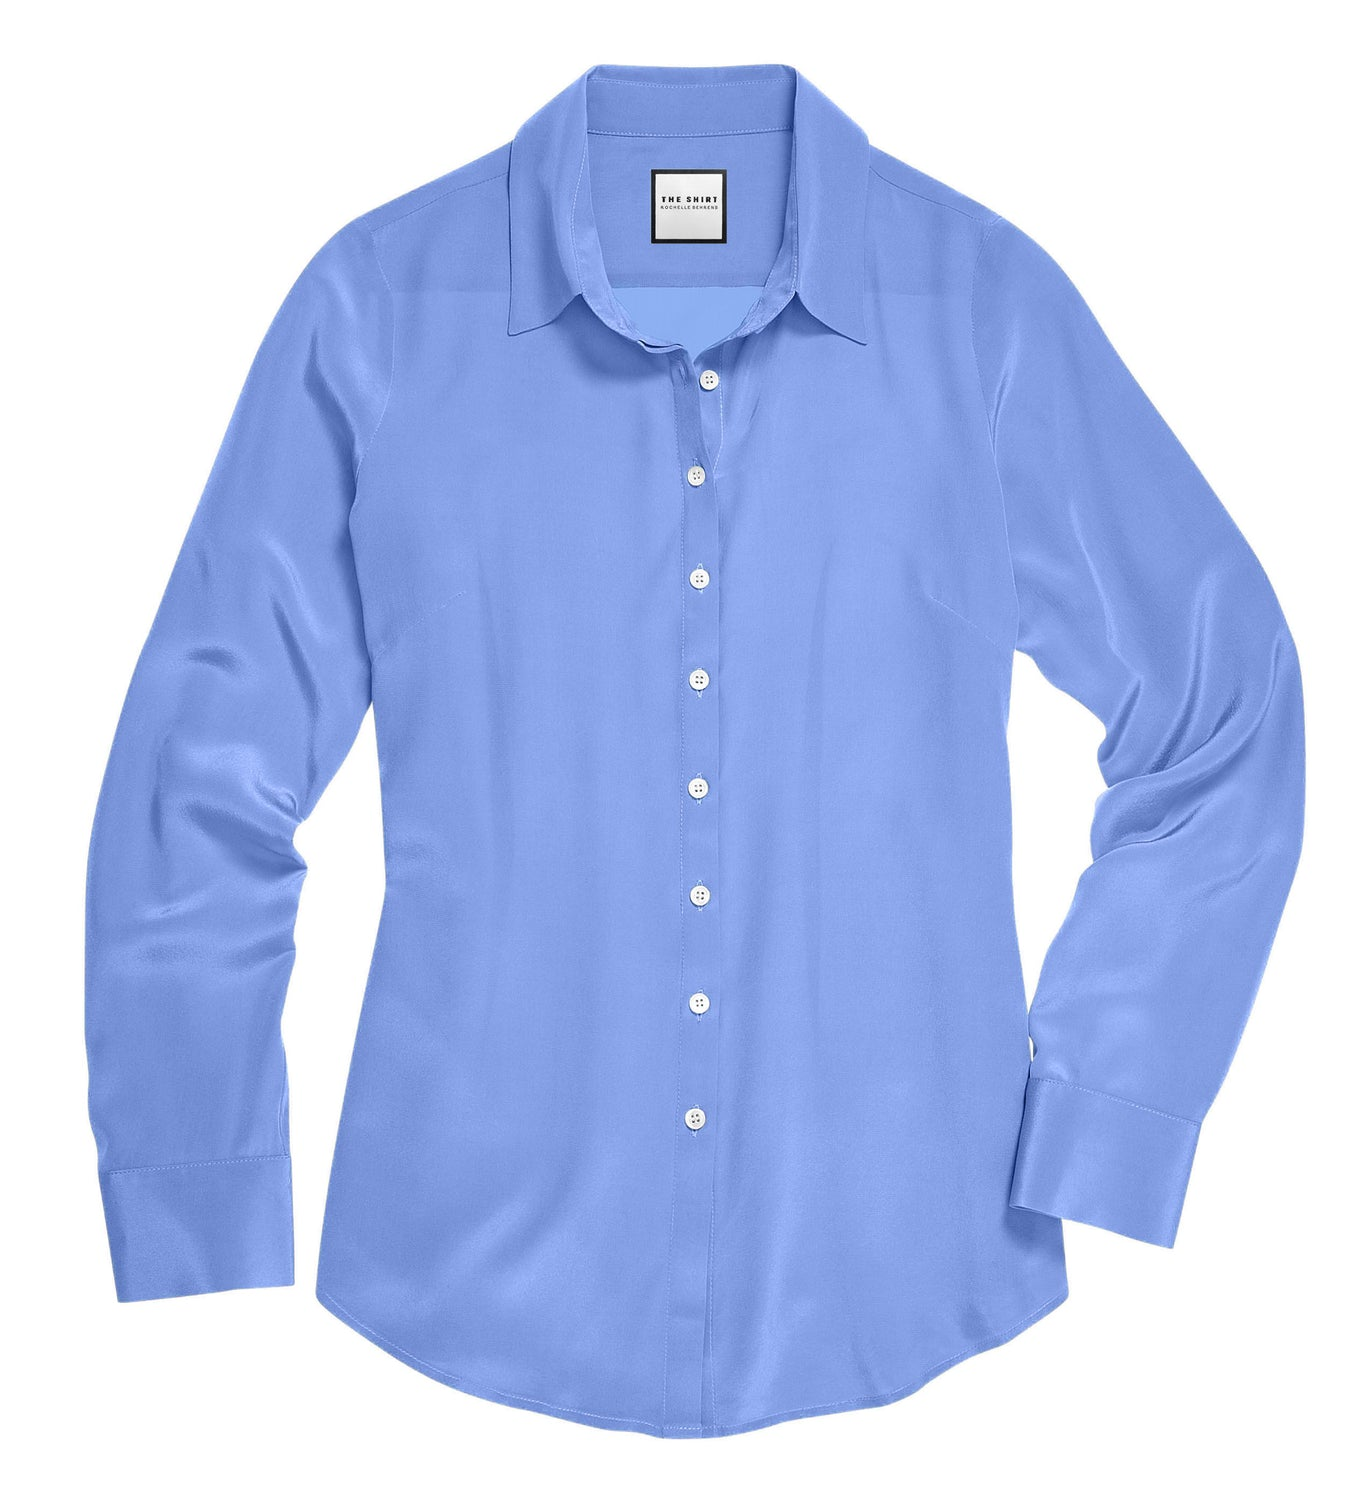 7dd0100ed9d The Shirt by Rochelle Behrens - The Signature Shirt - Prussian Blue